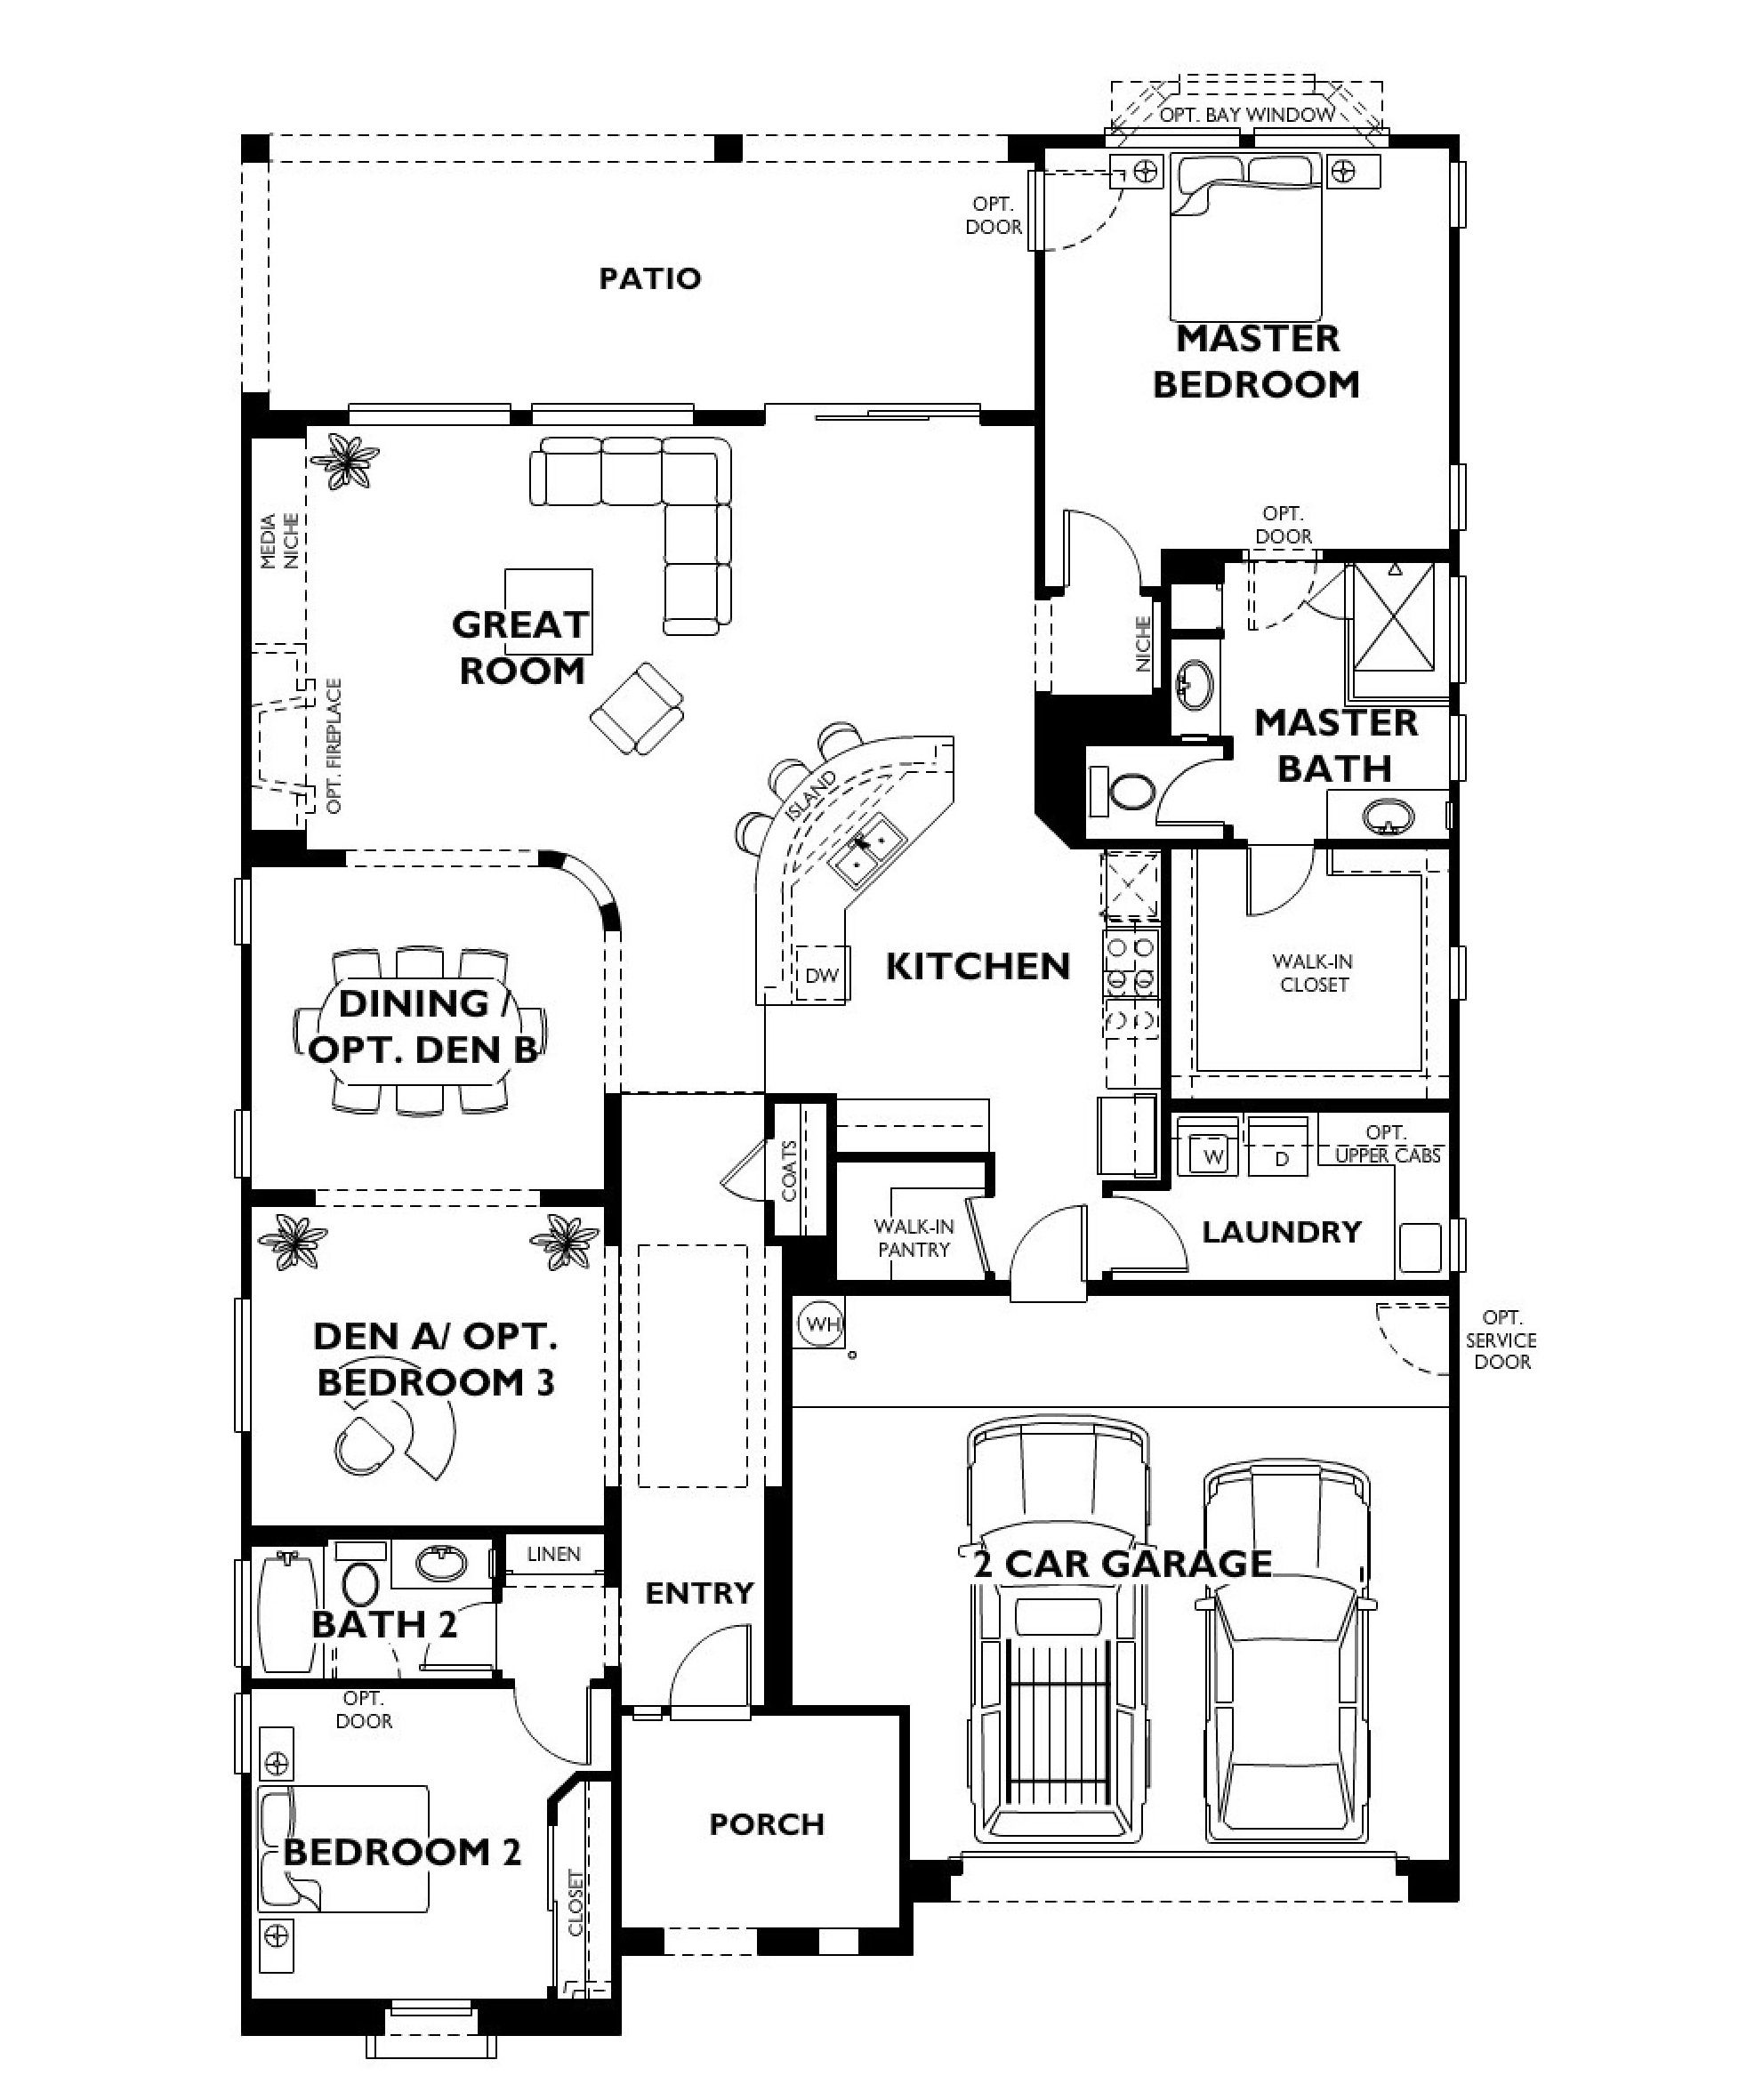 fame tropical house designs and floor plans with modern style awesome contemporary tropical homes interior floor plans layout